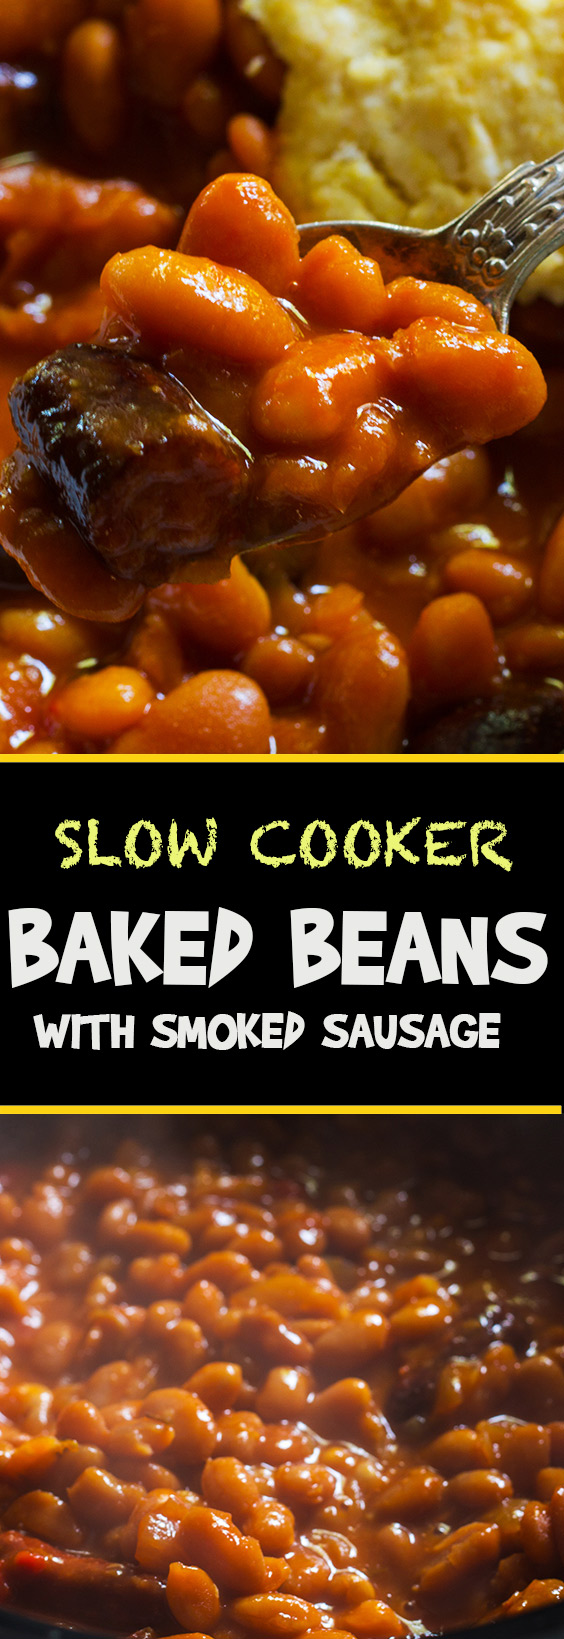 Just five basic ingredients: sausages, navy beans, molasses, sriracha and mustard. Super easy recipe for the best baked beans ever. make it today.